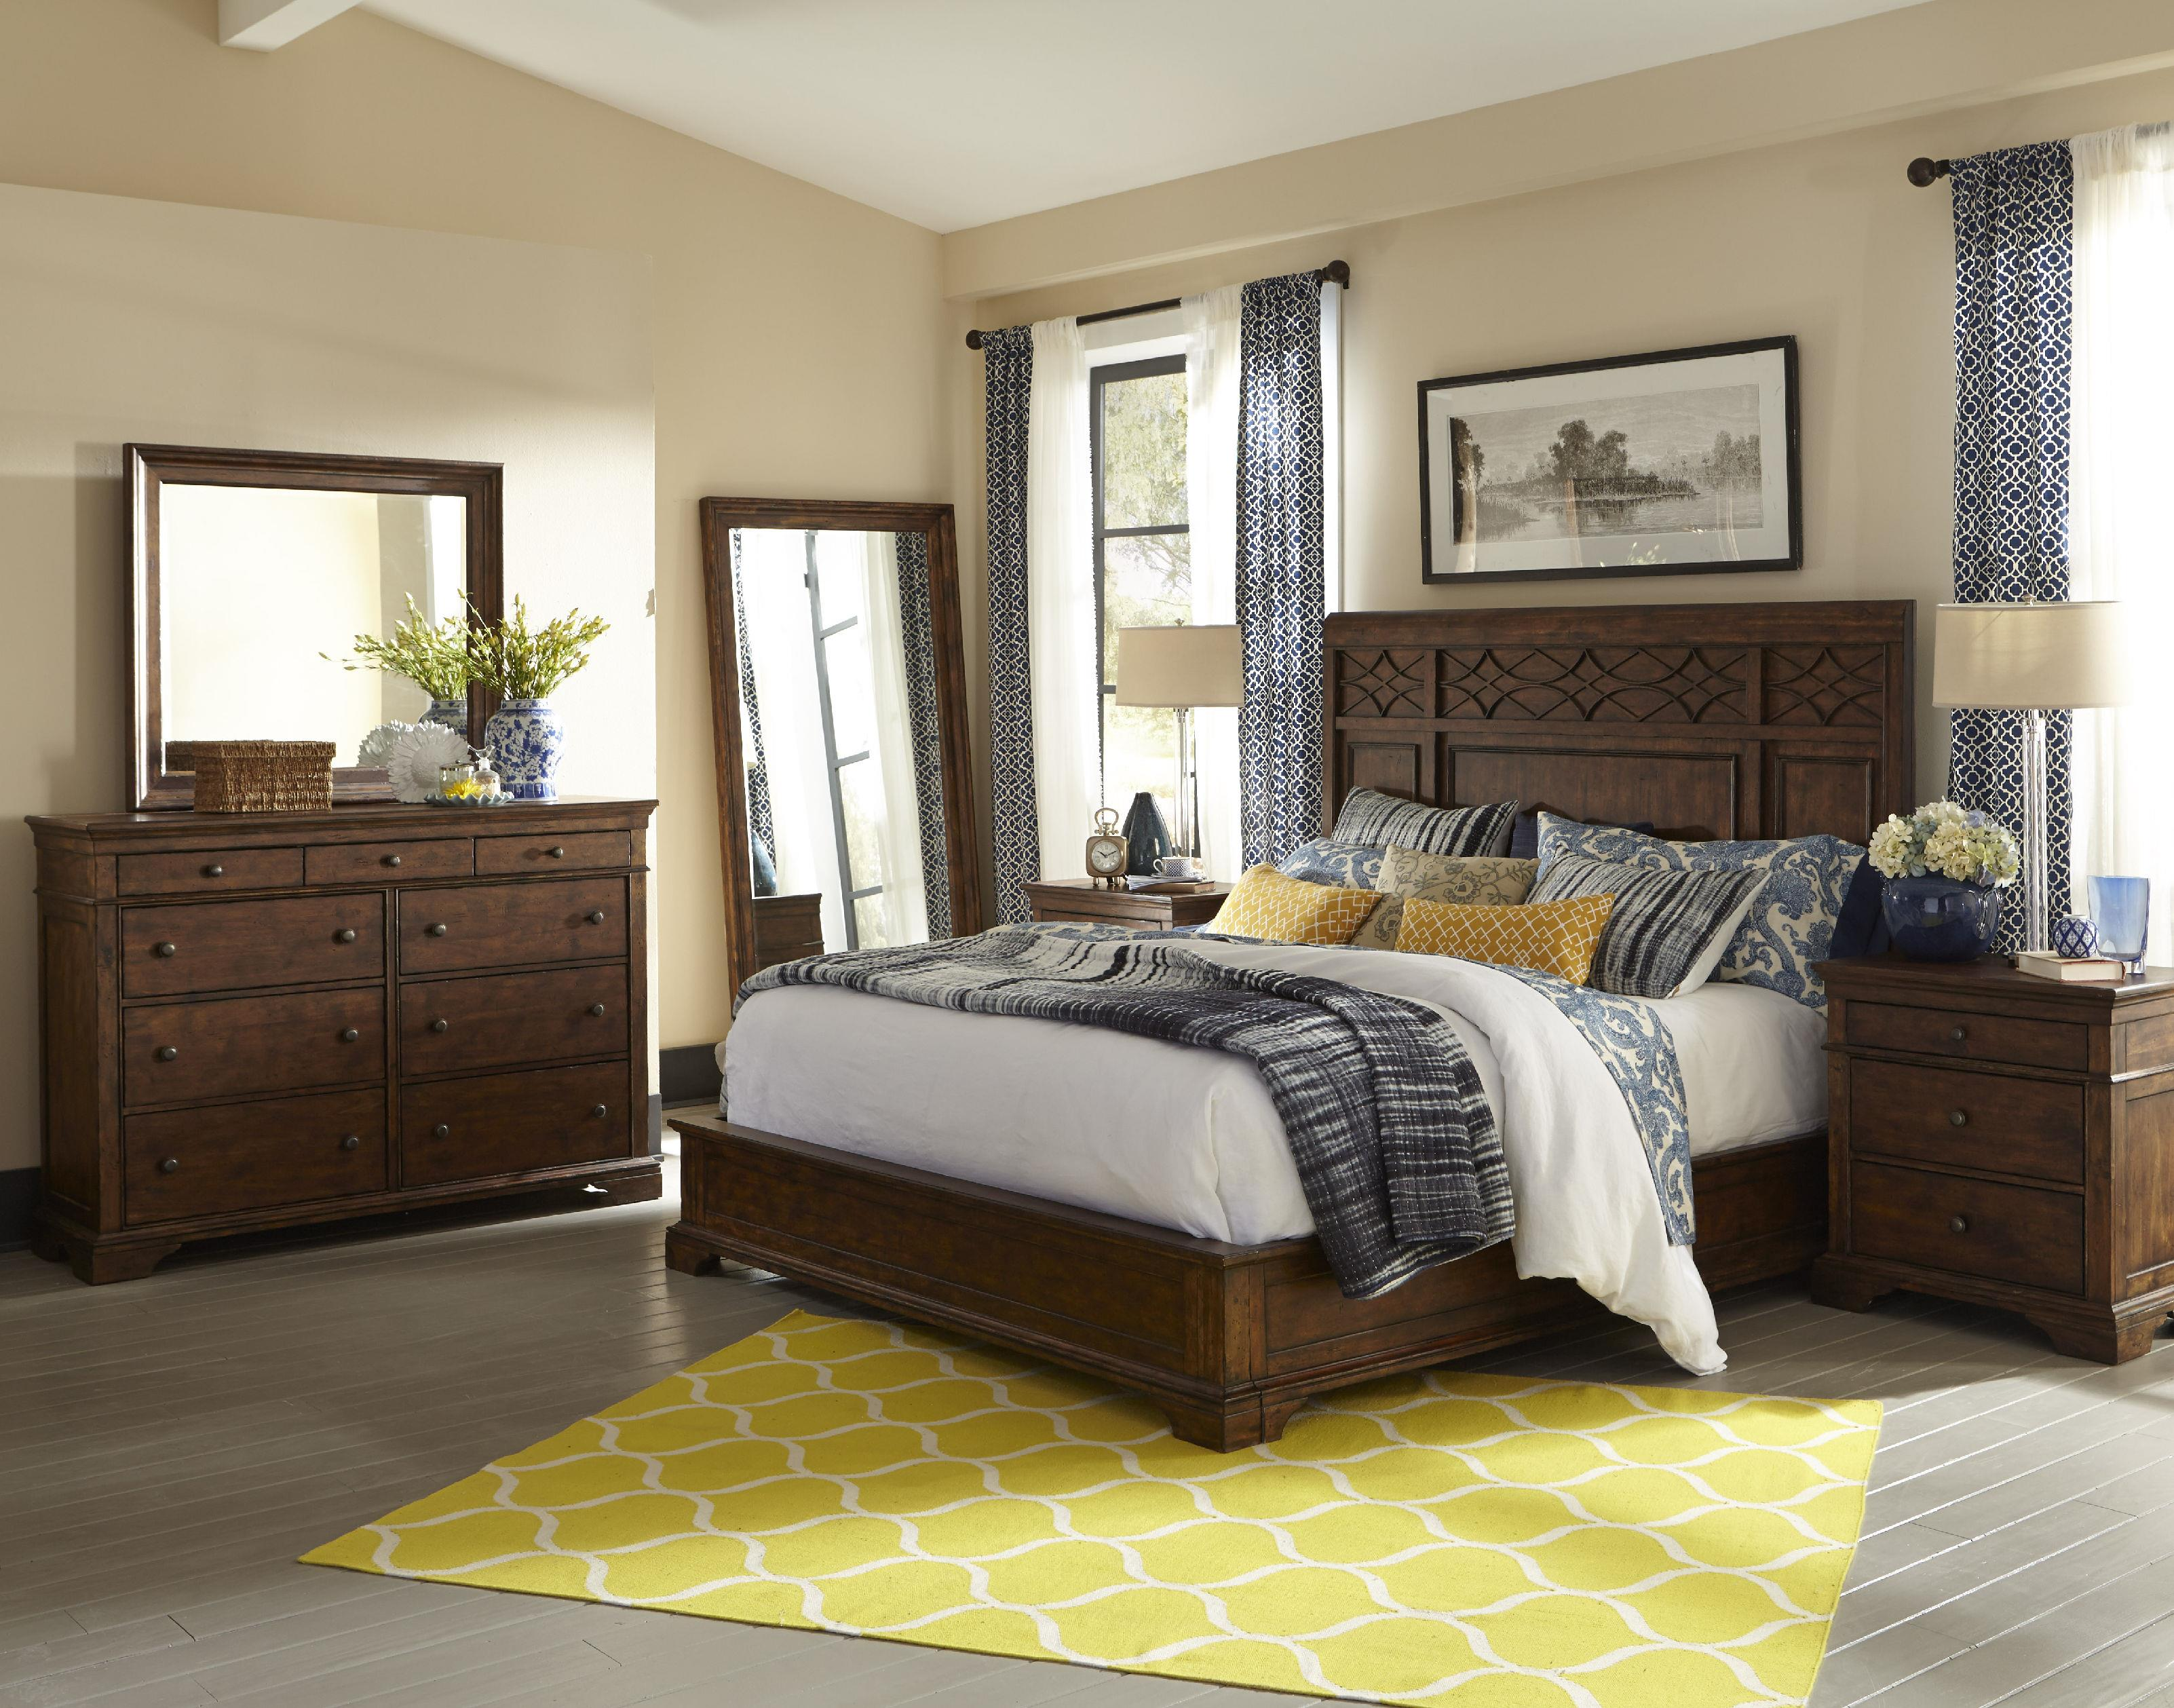 GARTH / BROOKS King Bedroom Group by Trisha Yearwood Home Collection by Klaussner at EFO Furniture Outlet